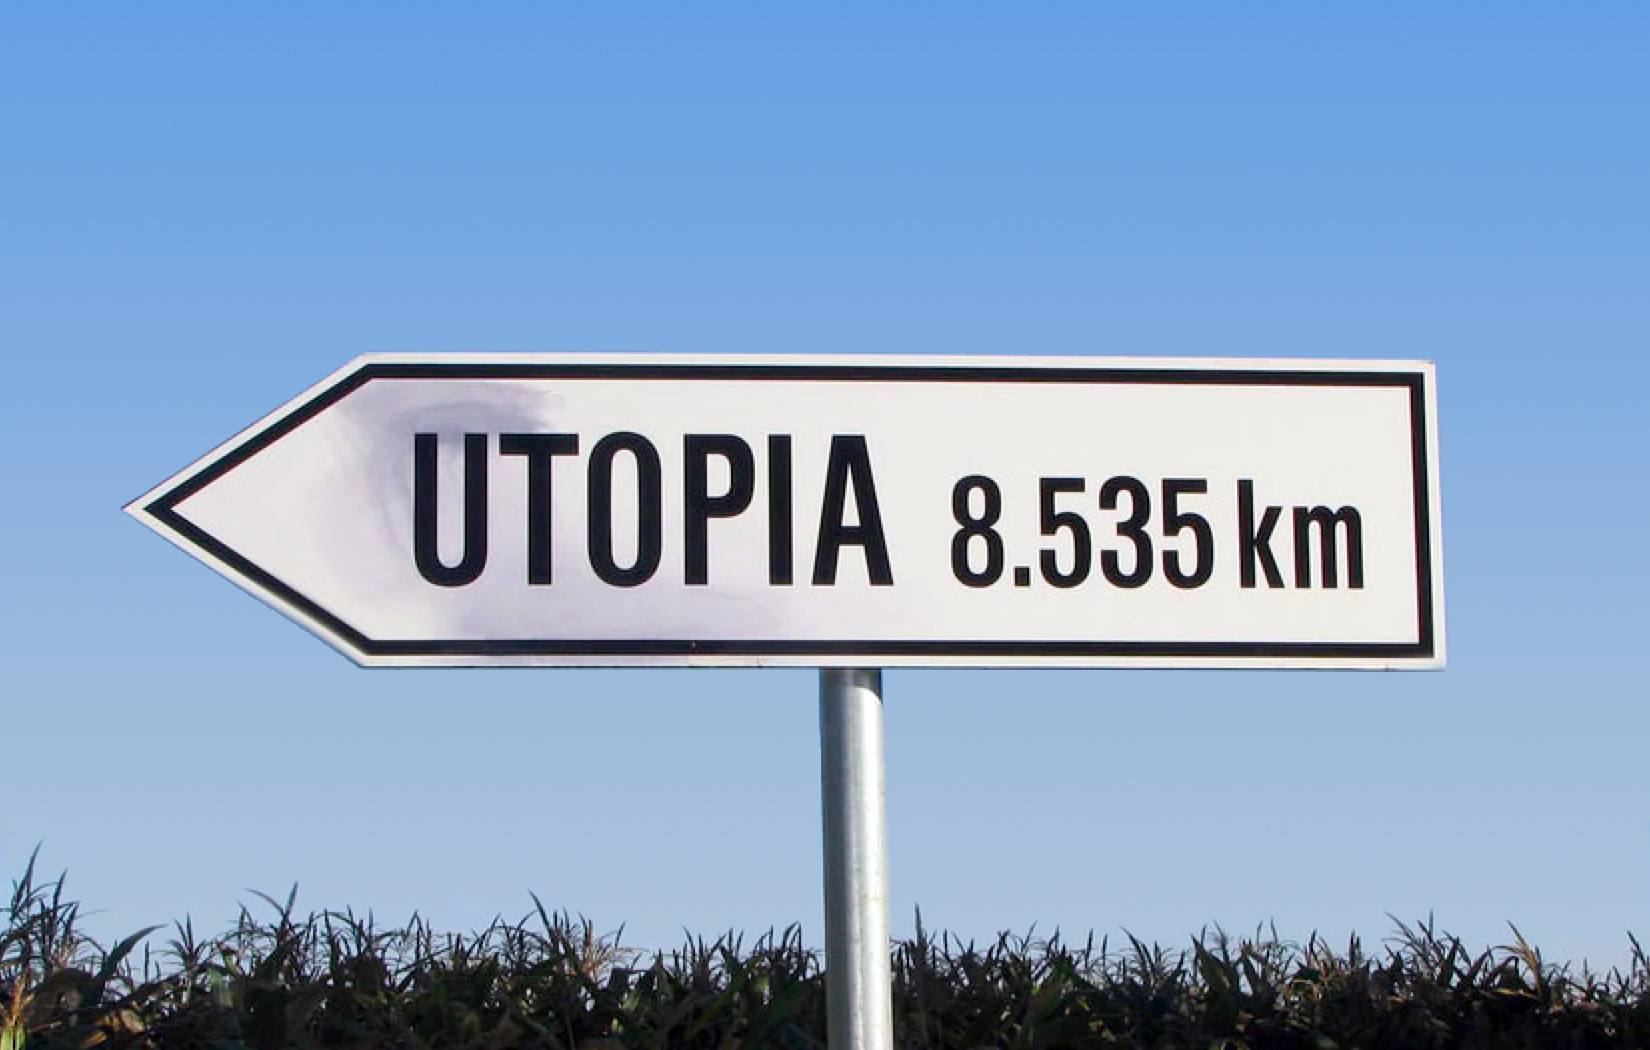 utopia_in_four_movements_filmstill5_utopiasign.jpg (1650×1050)